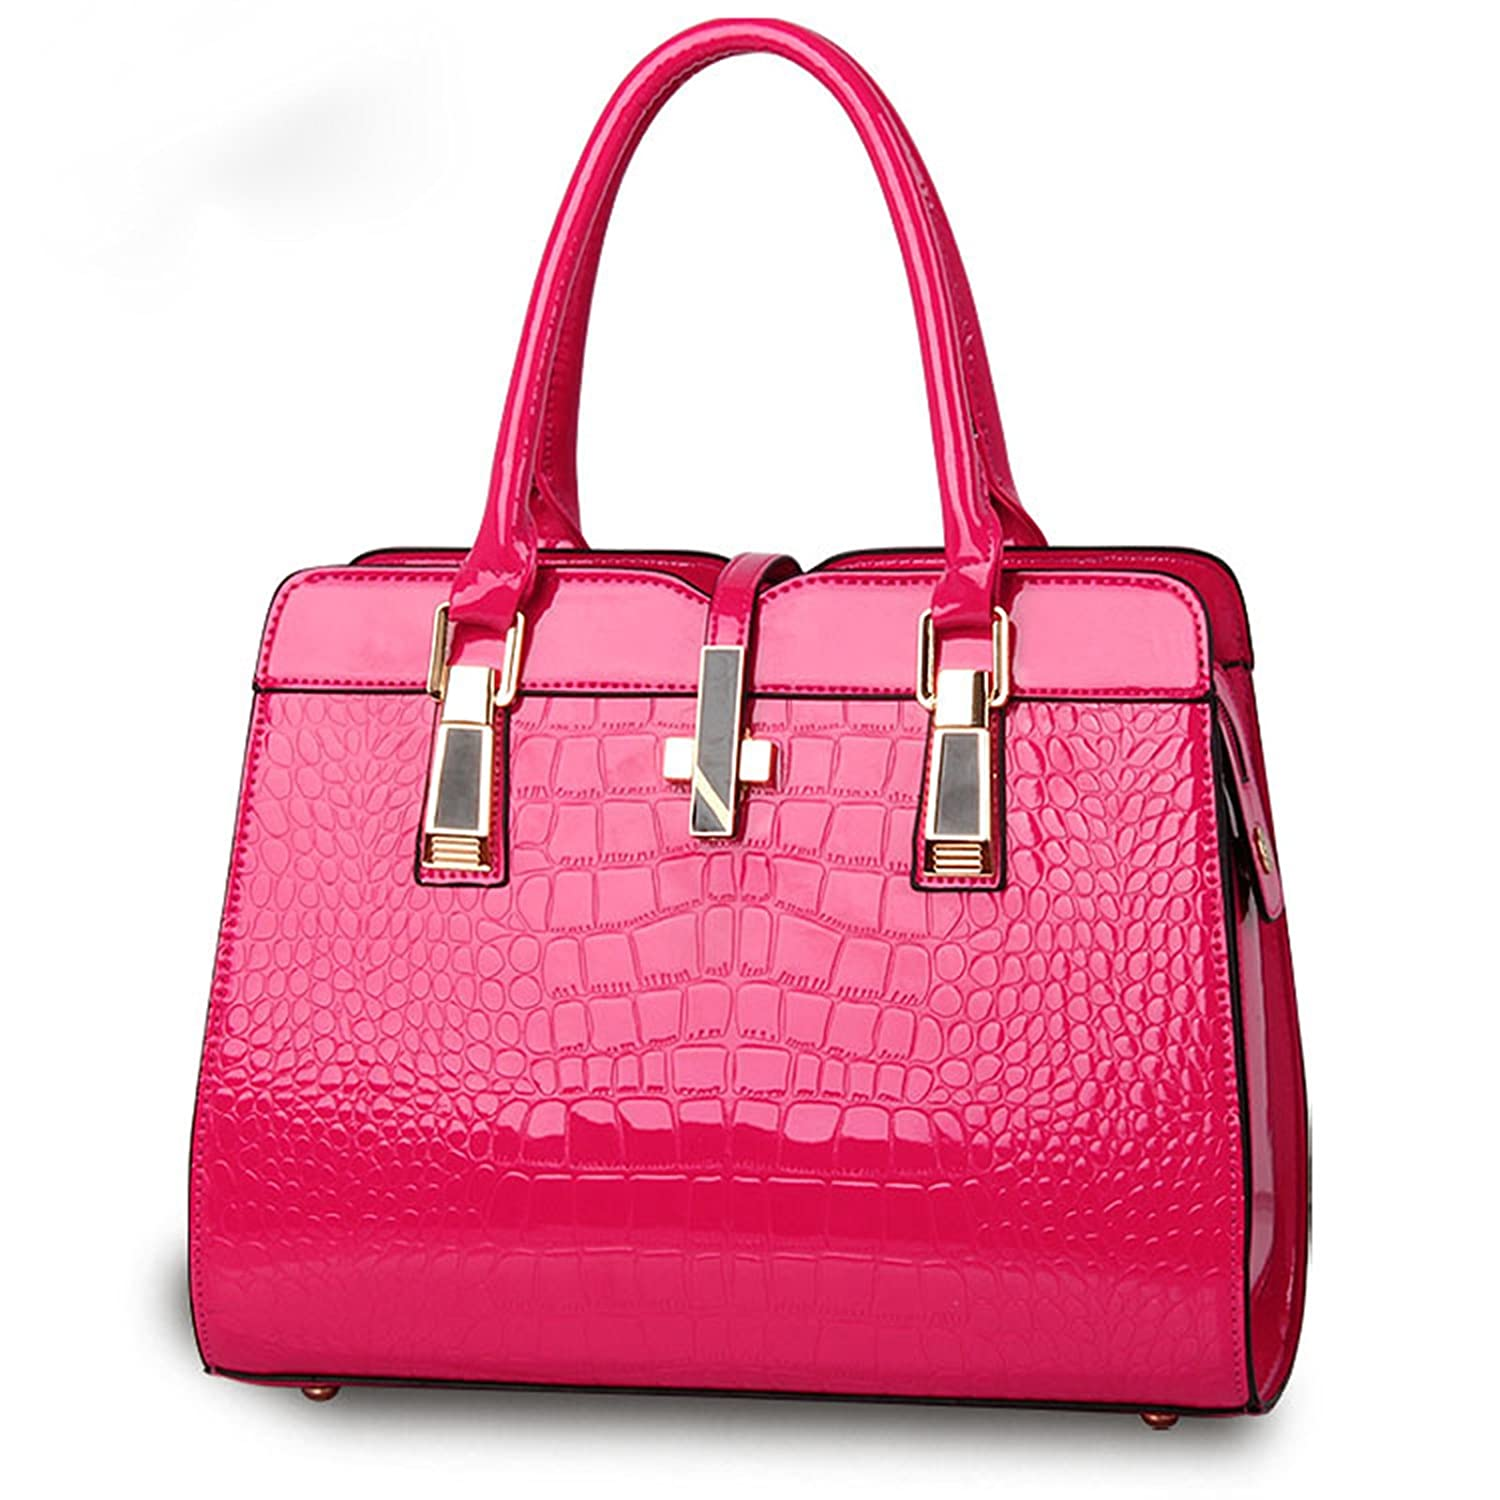 Girl Women's Large Roomy Pu Leather Multifunctional Tote Bag Hot Pink